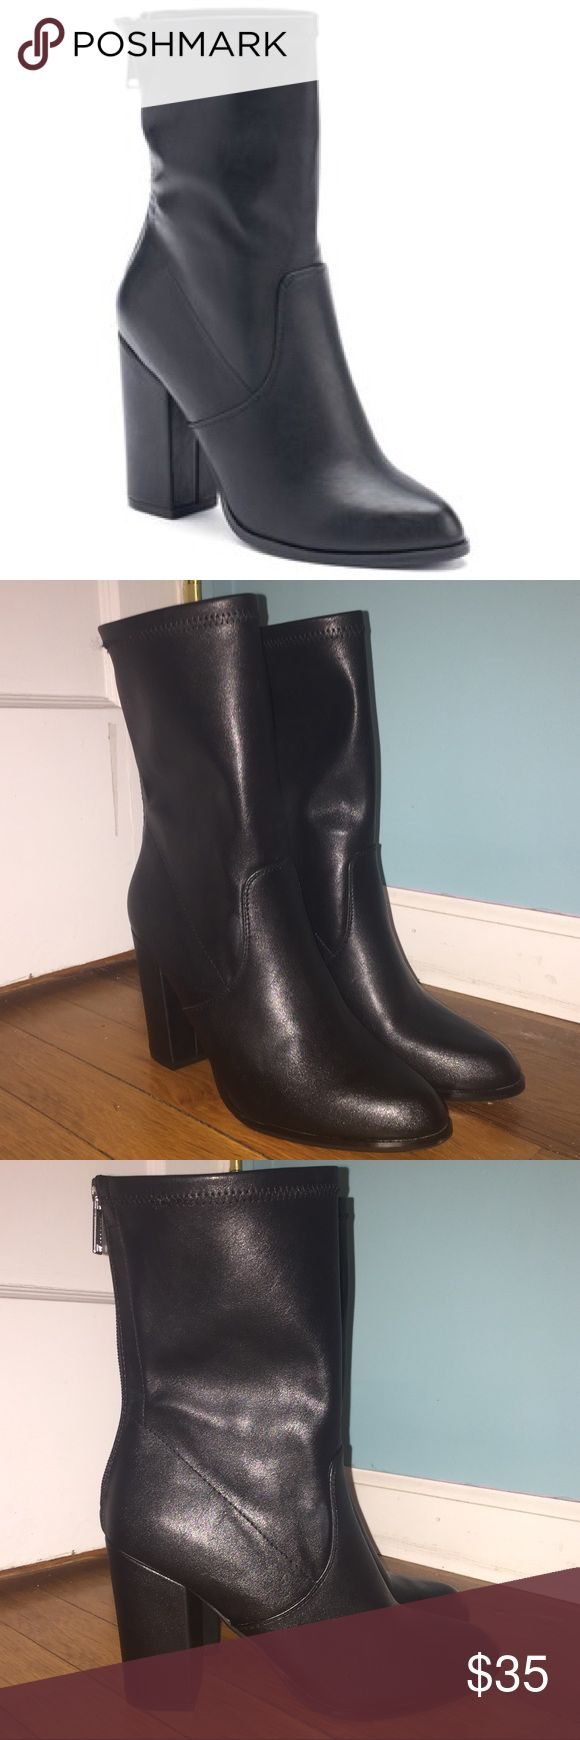 """Brand New!!! Juicy Couture Mid-Calf Boots Brand new """"Sullivan Women's Mid-Calf Boots"""" from Juicy Couture. Flexible shaft, block heel, almond toe, silver zipper in the back. 3"""" heel and 6"""" shaft. Never worn before and in perfect condition! Juicy Couture Shoes Heeled Boots"""